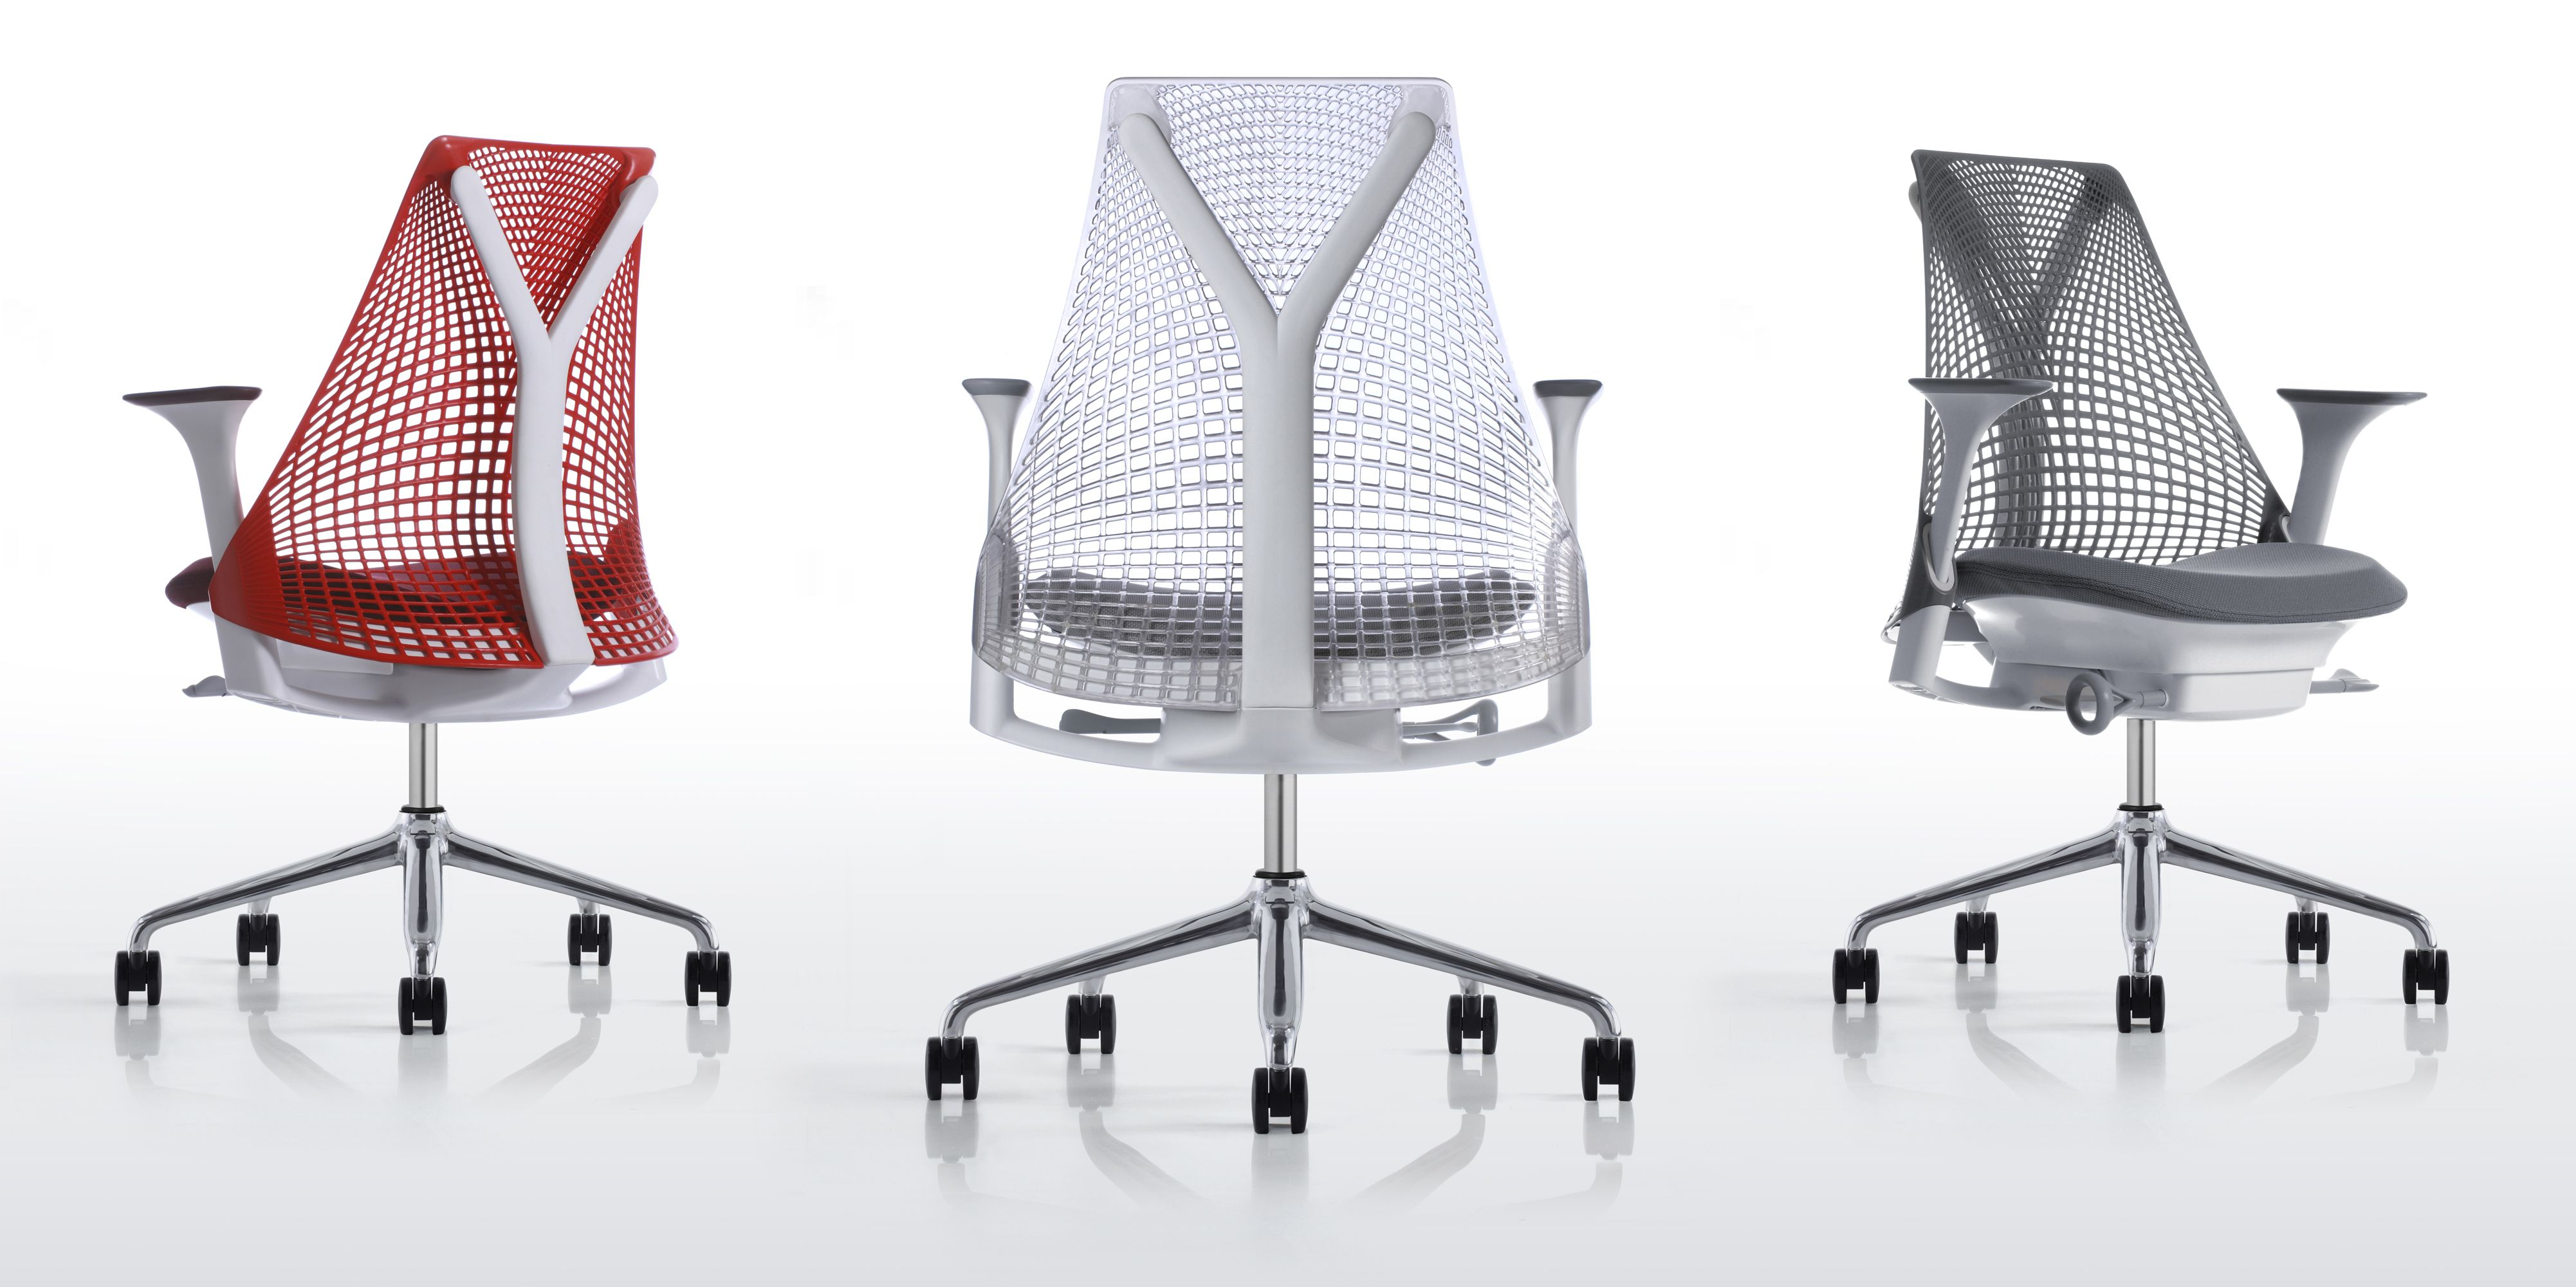 Herman Miller Sayl Chair Best ergonomic office chair